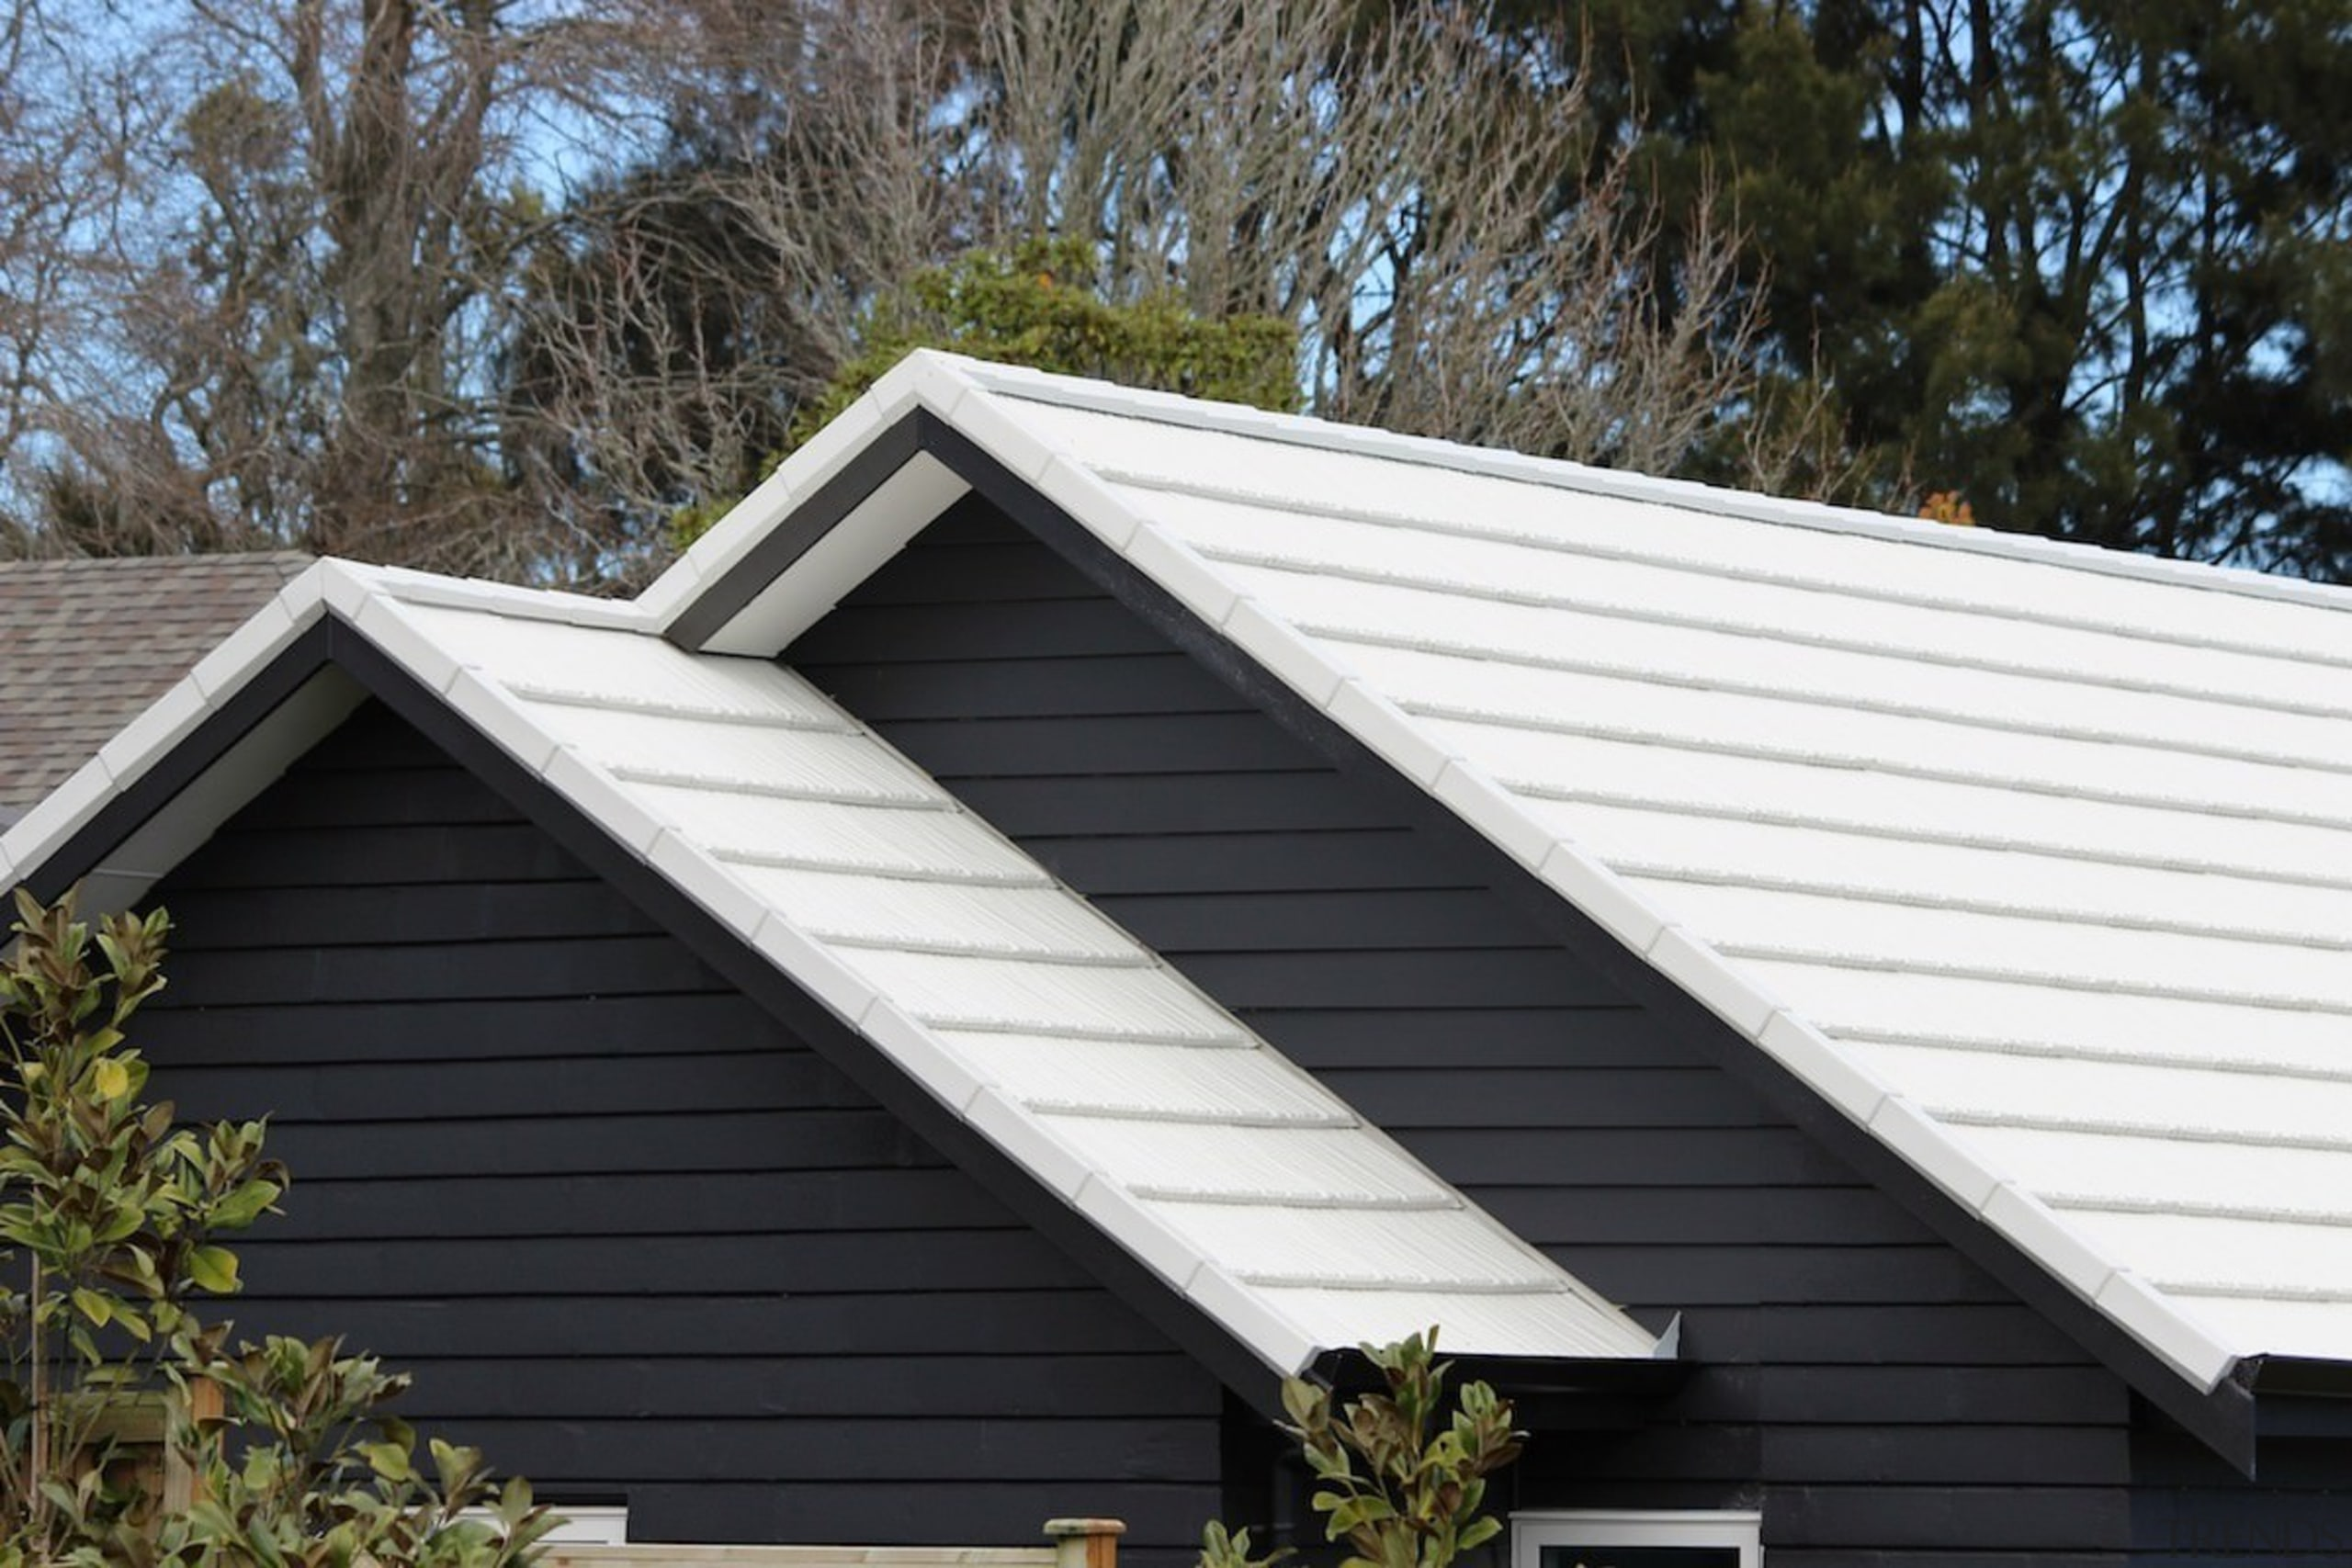 Metrotile metal panels - Metrotile metal panels - daylighting, facade, home, house, real estate, roof, siding, window, black, white